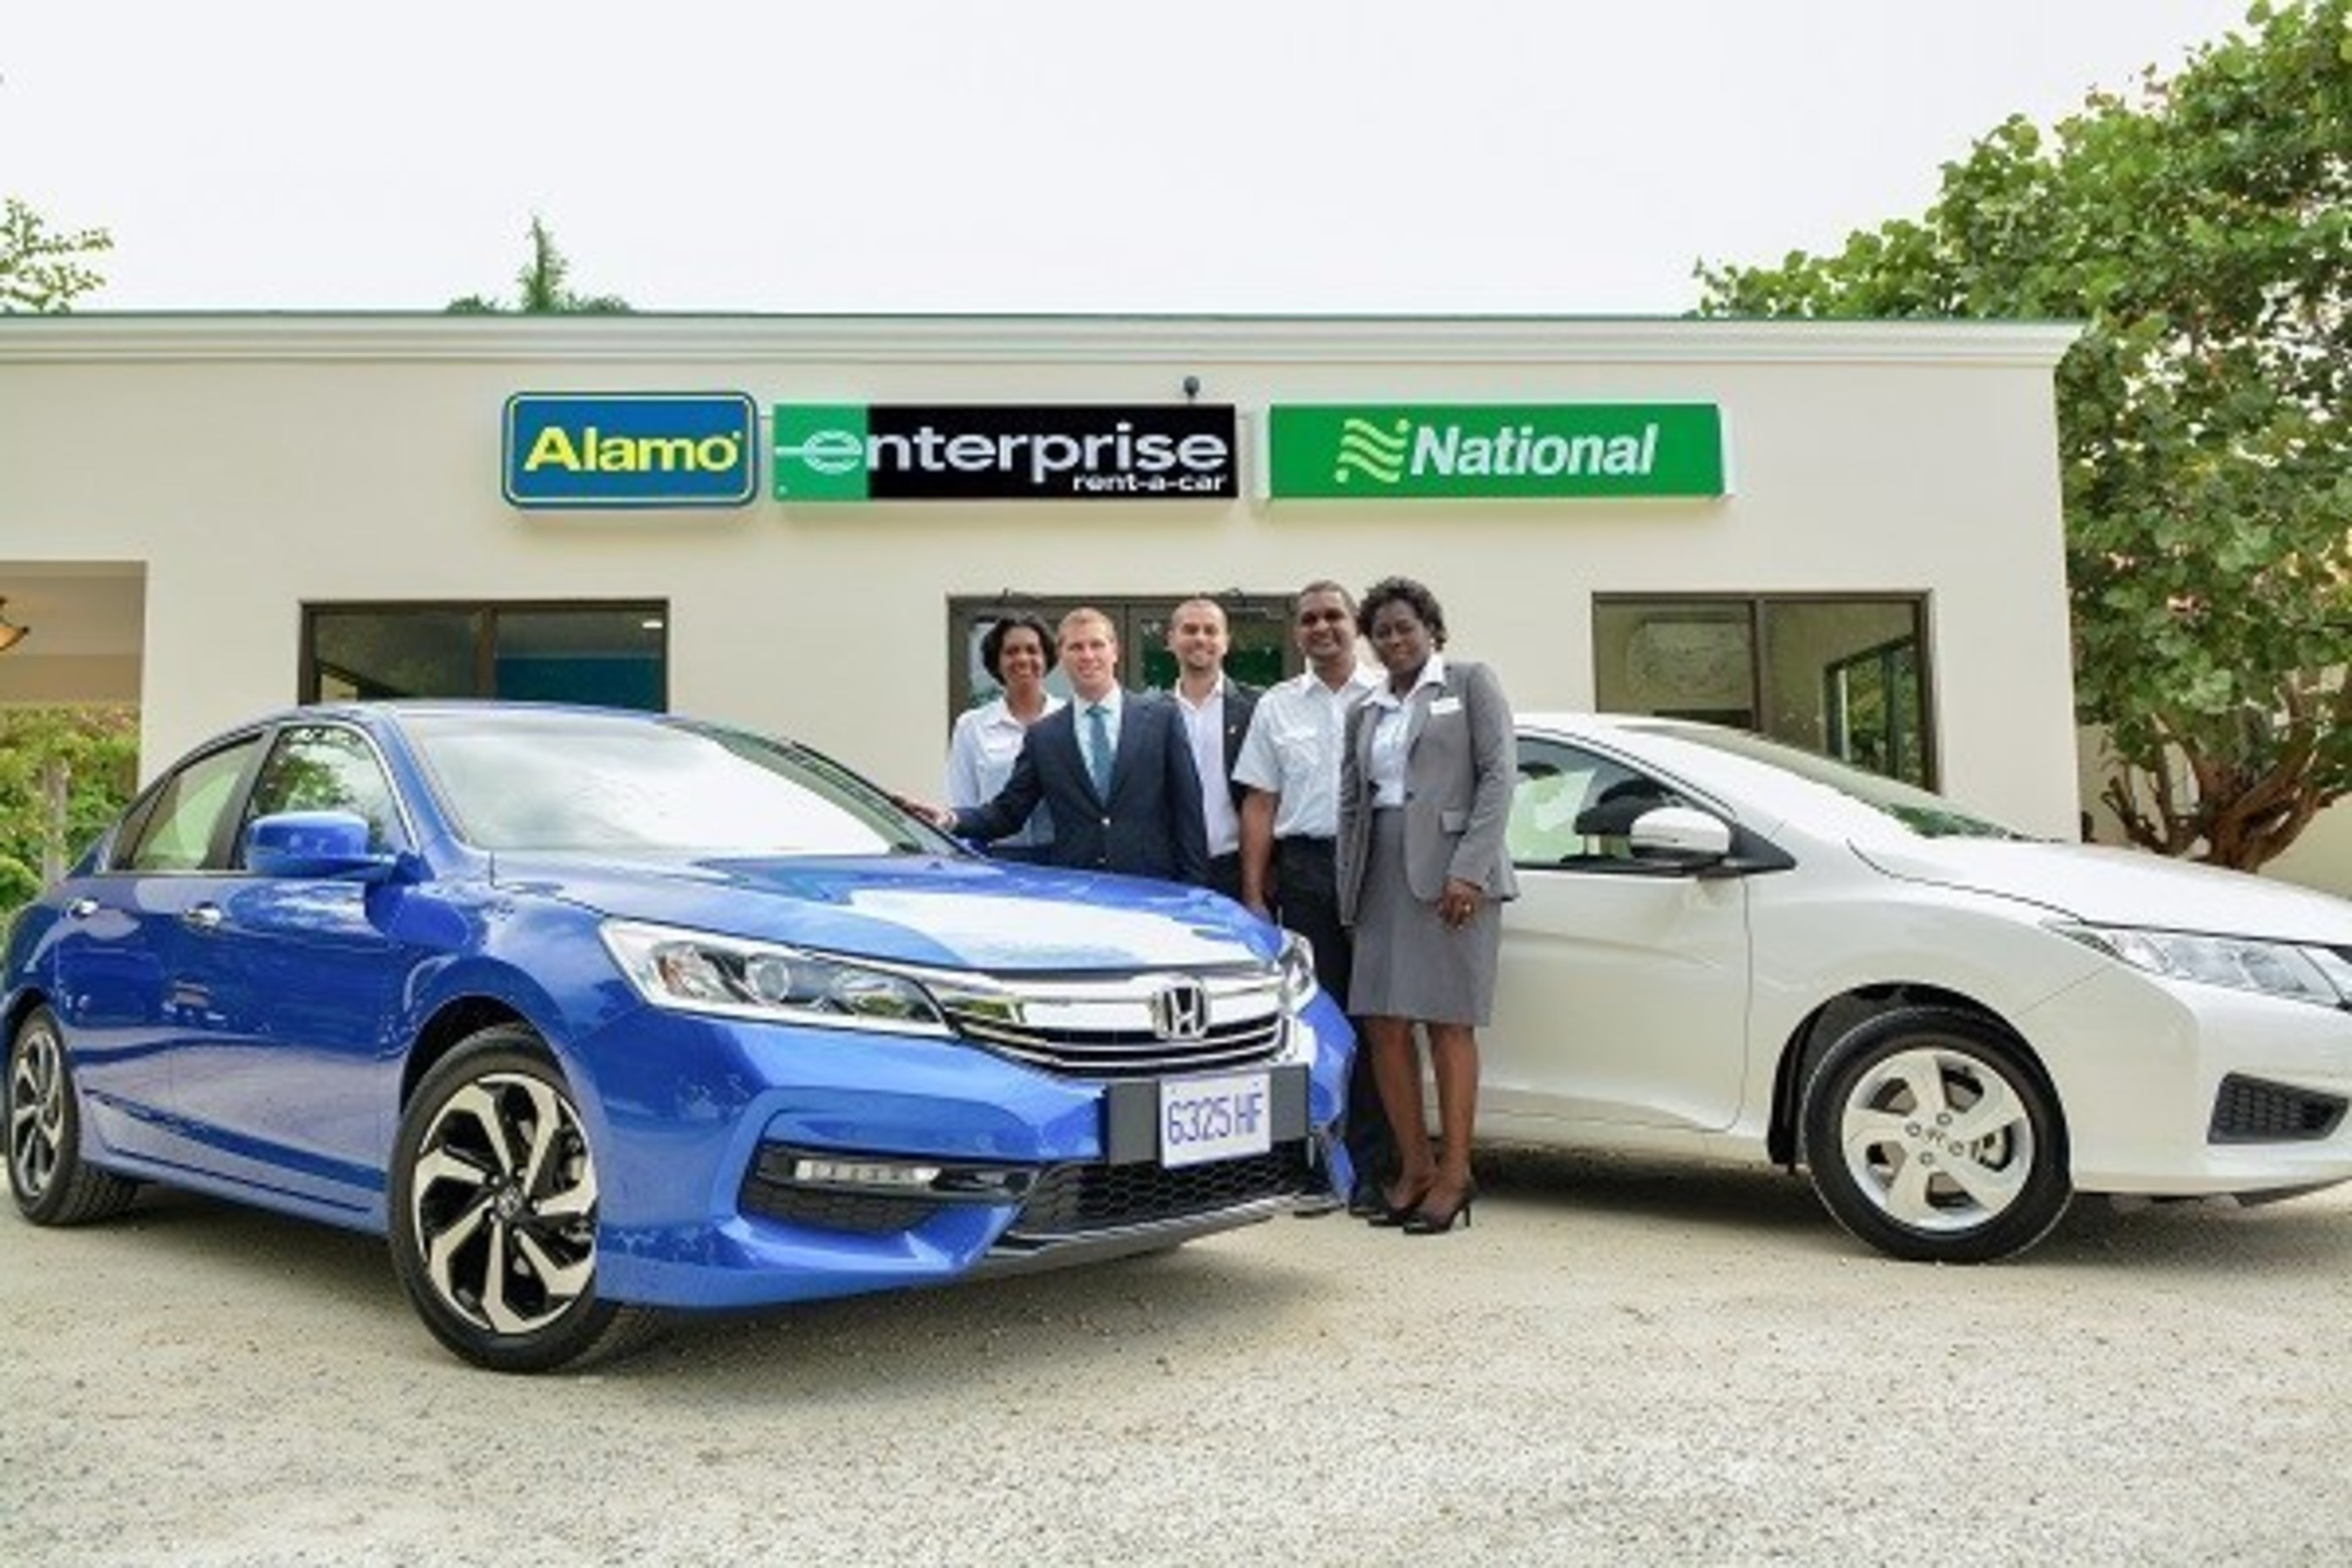 New Enterprise National And Alamo Car Rental Locations